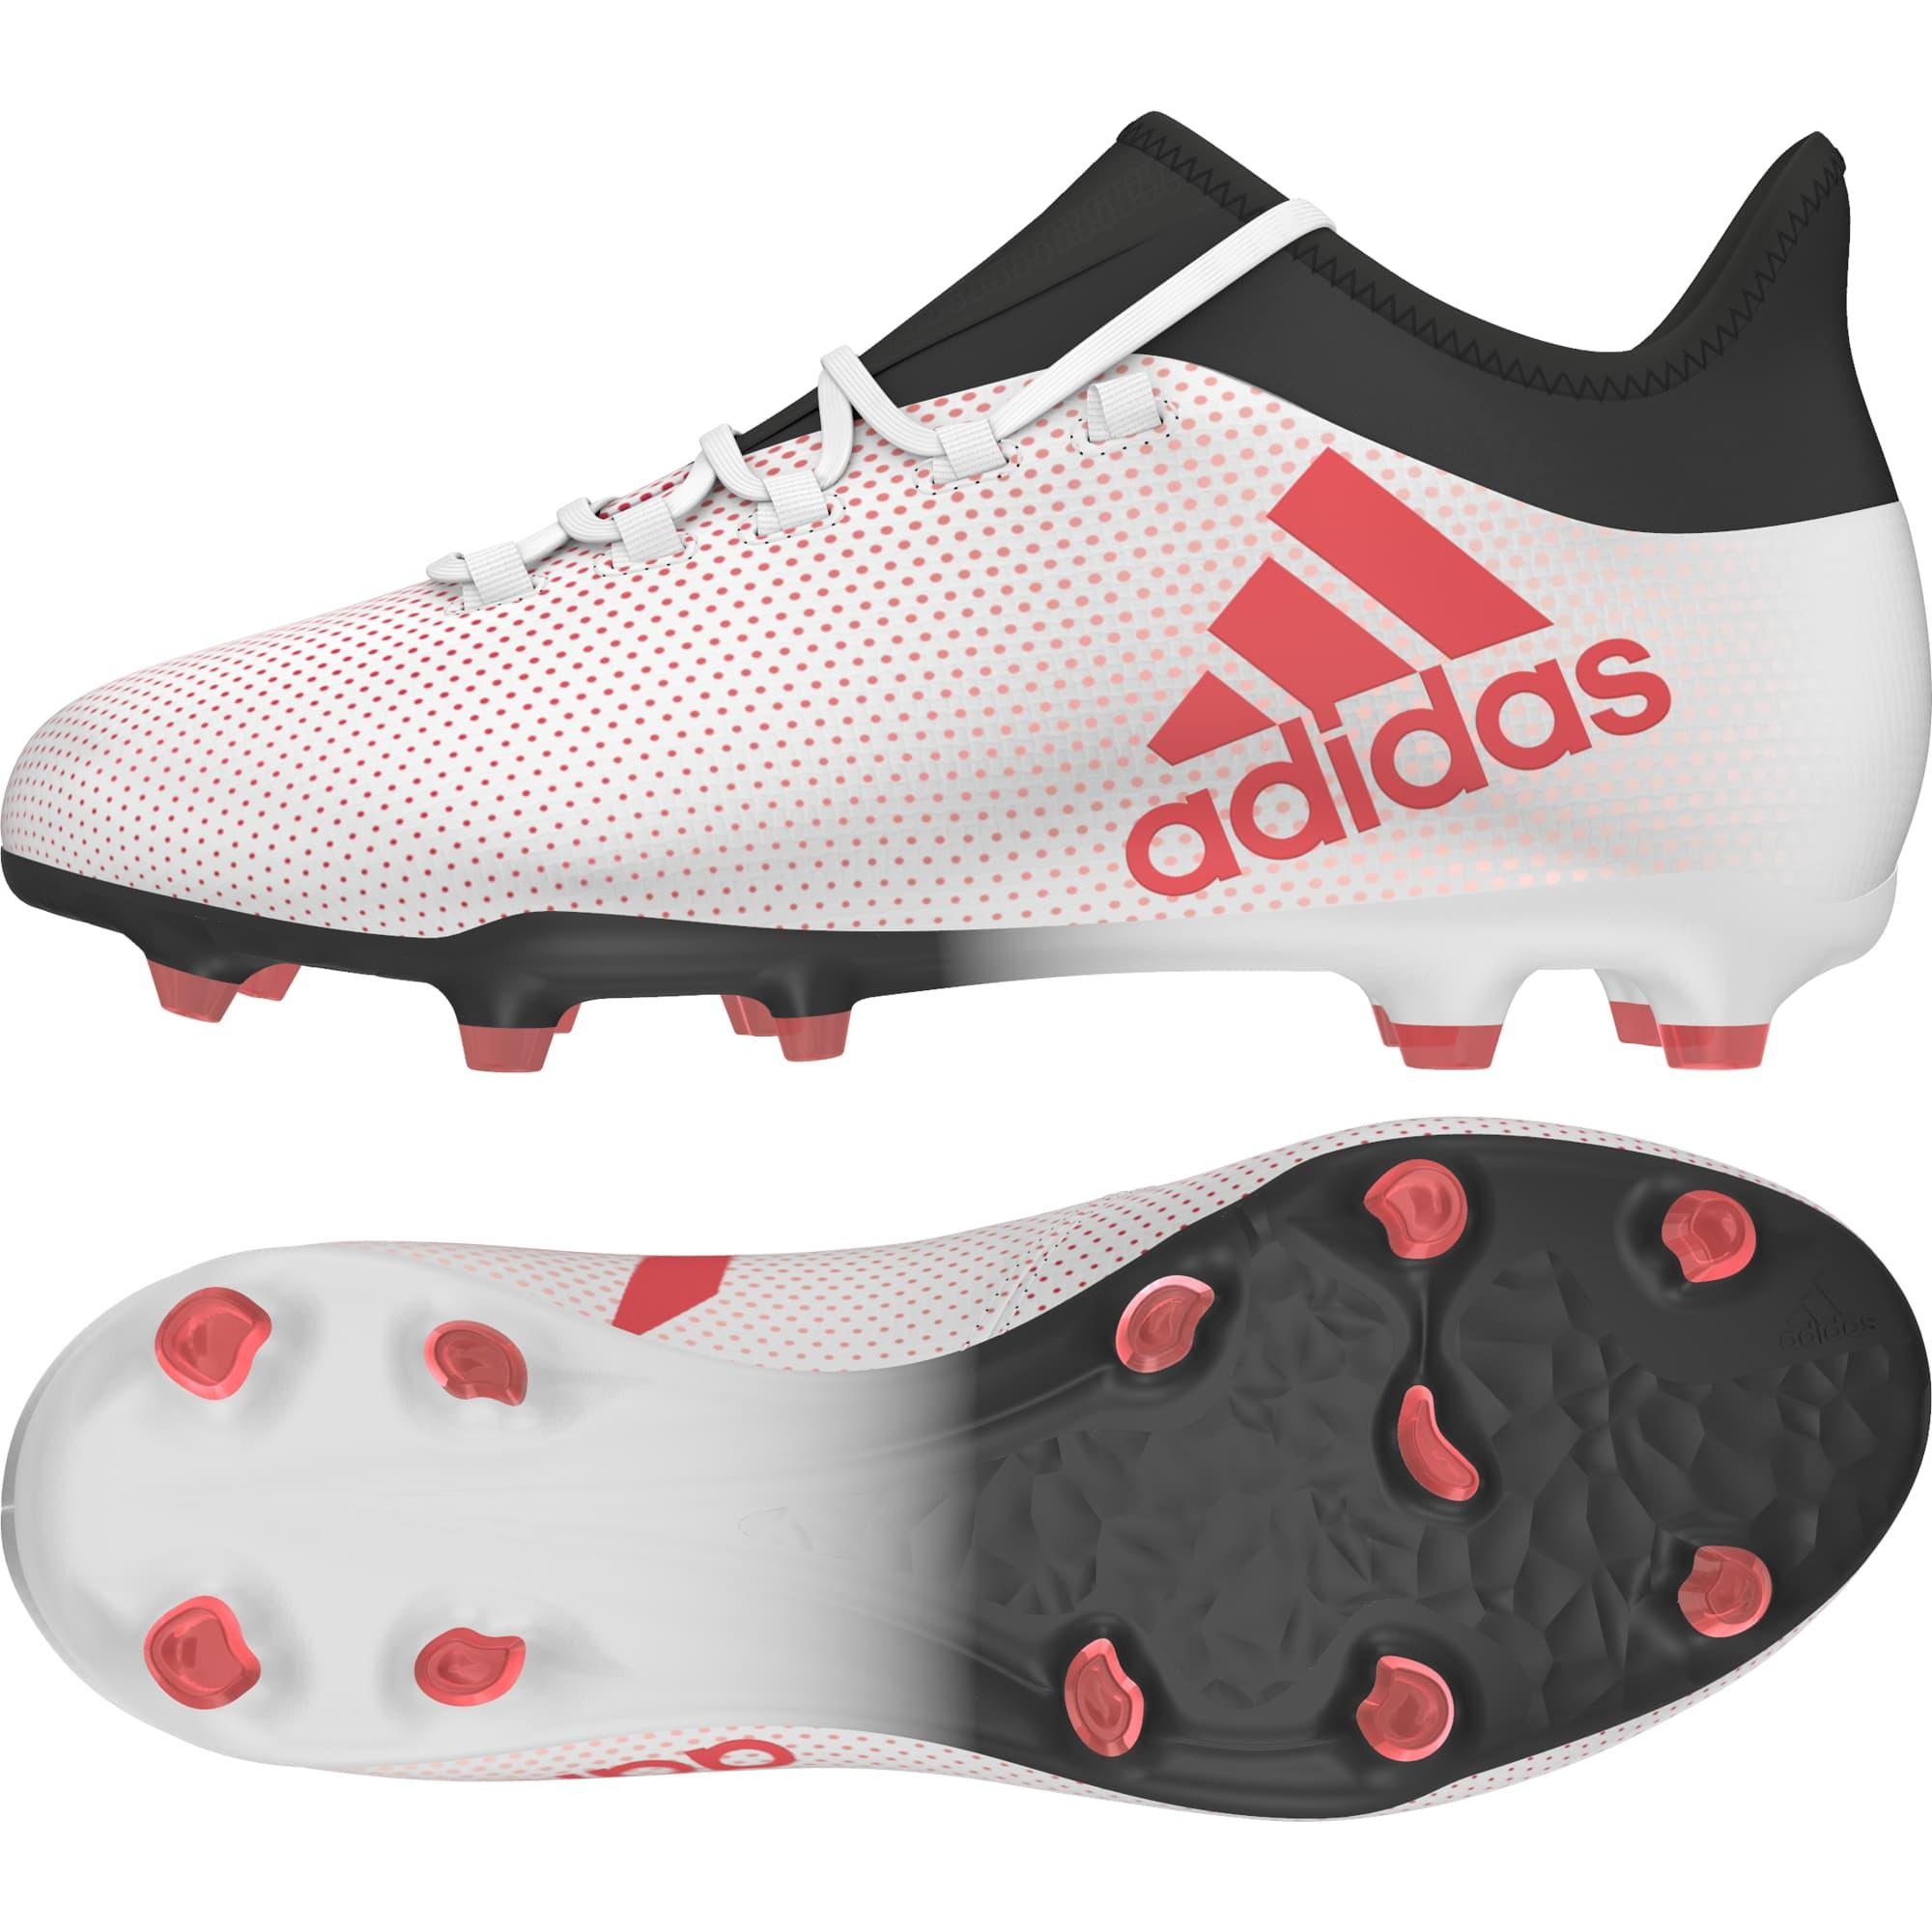 new product 9e67e 60d16 adidas x 17.1 fg core black solar  adidas x 17.1 firm ground boots jr grey  real coral core black